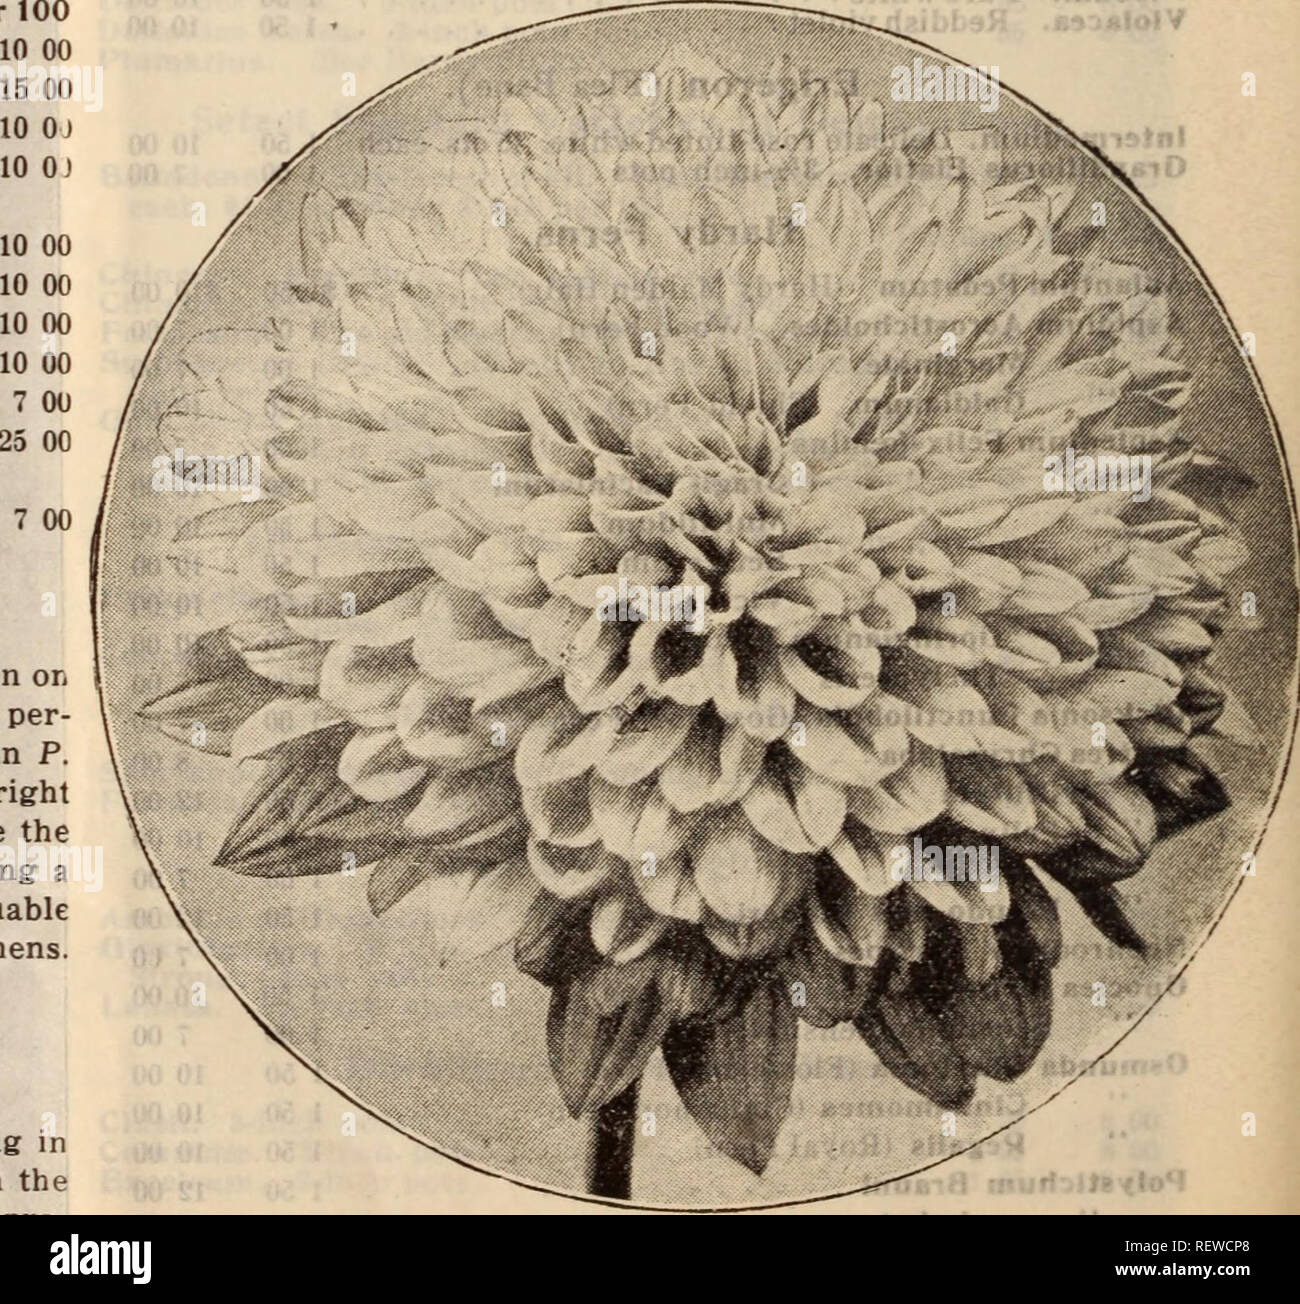 . Dreer's wholesale price list / Henry A. Dreer.. Nursery Catalogue. HELIOPSIS SCABRA ZINNIAFLORA Gunnera. 10 OJ Scabra. Fine strong plants in 5-inch pots of this grand foliage plant. 35 cents each; $3.50 per dozen. ORNAMENTAL GRASSES AND BAMBOOS. These are now used very extensively for beds, specimens on lawns, etc., etc. We grow the leading varieties in large quantities. For full descriptions, see pages 192 and 193 of our Garden Book for 1914. Grasses. Per doz. Per 100 Arundo Donax. Strong, dormant eyes $1 50 $10 00 Donax Varie8:ata. Strong, dormant eyes 2 00 15 00 Arrhenatherum Bulbosum fol Stock Photo